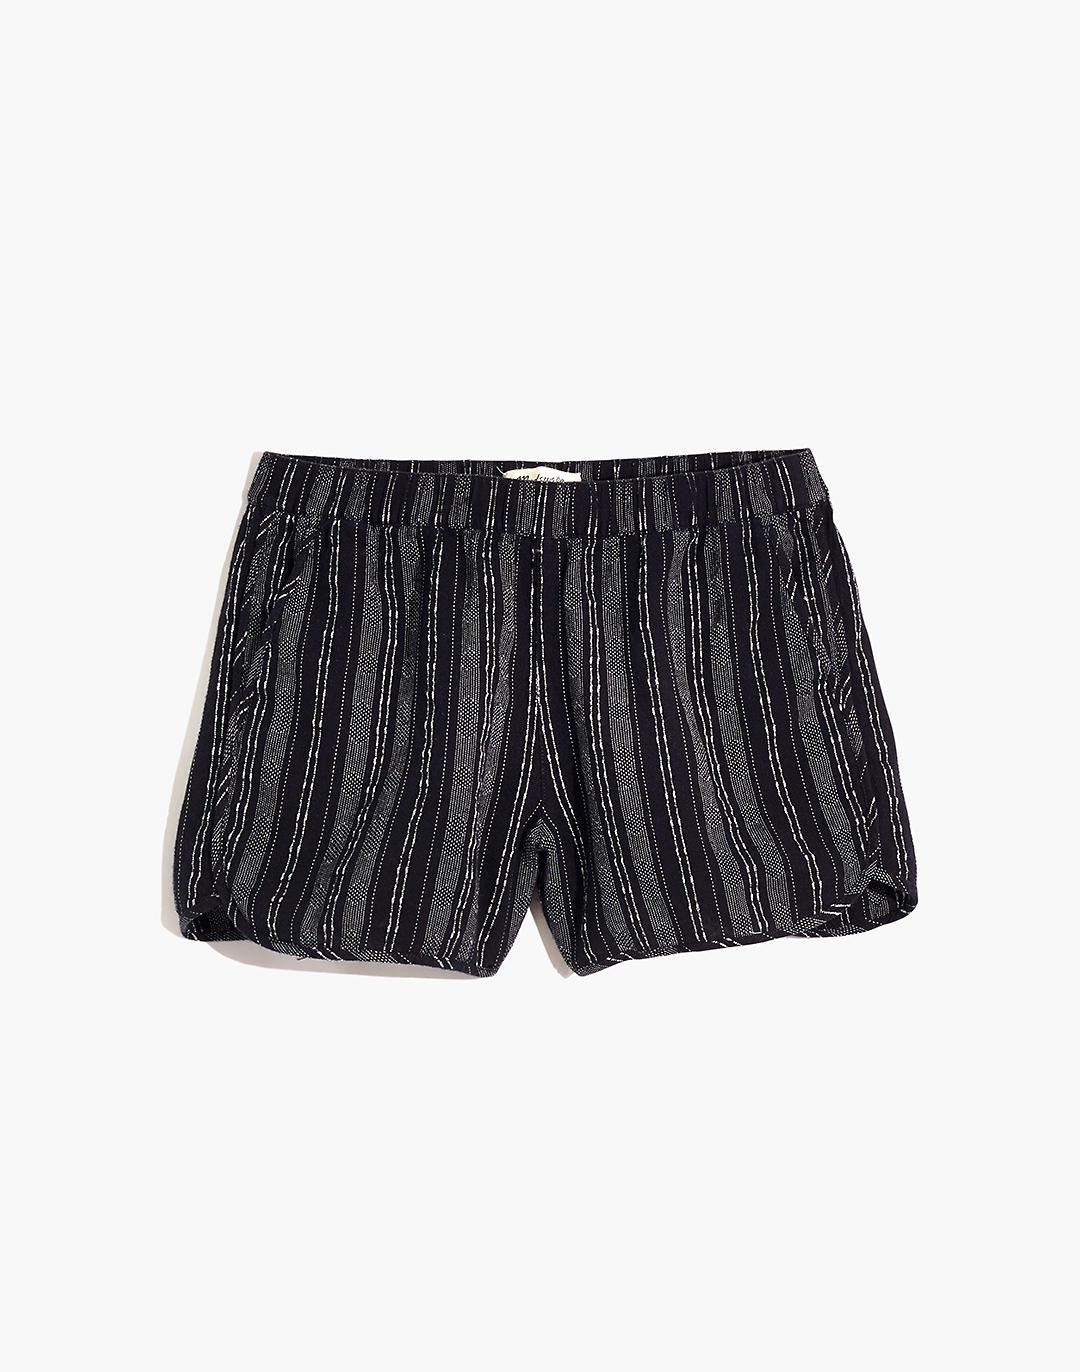 Linen-Cotton Pull-On Shorts in Jacquard Stripe 3